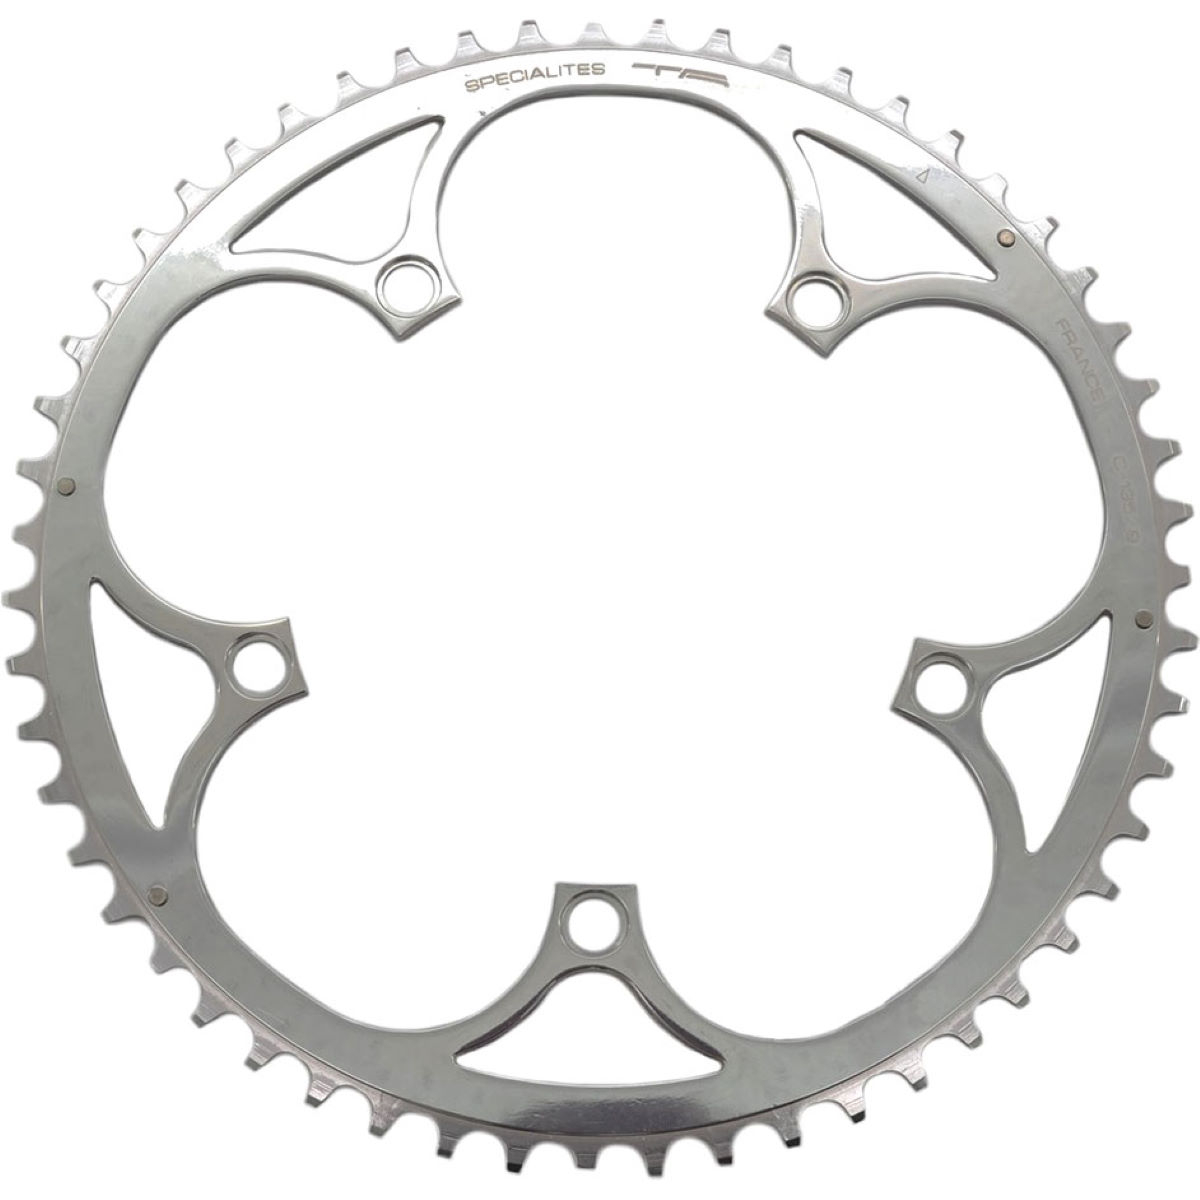 TA TA 135 PCD Vento Campagnolo Middle Chainring   Chain Rings